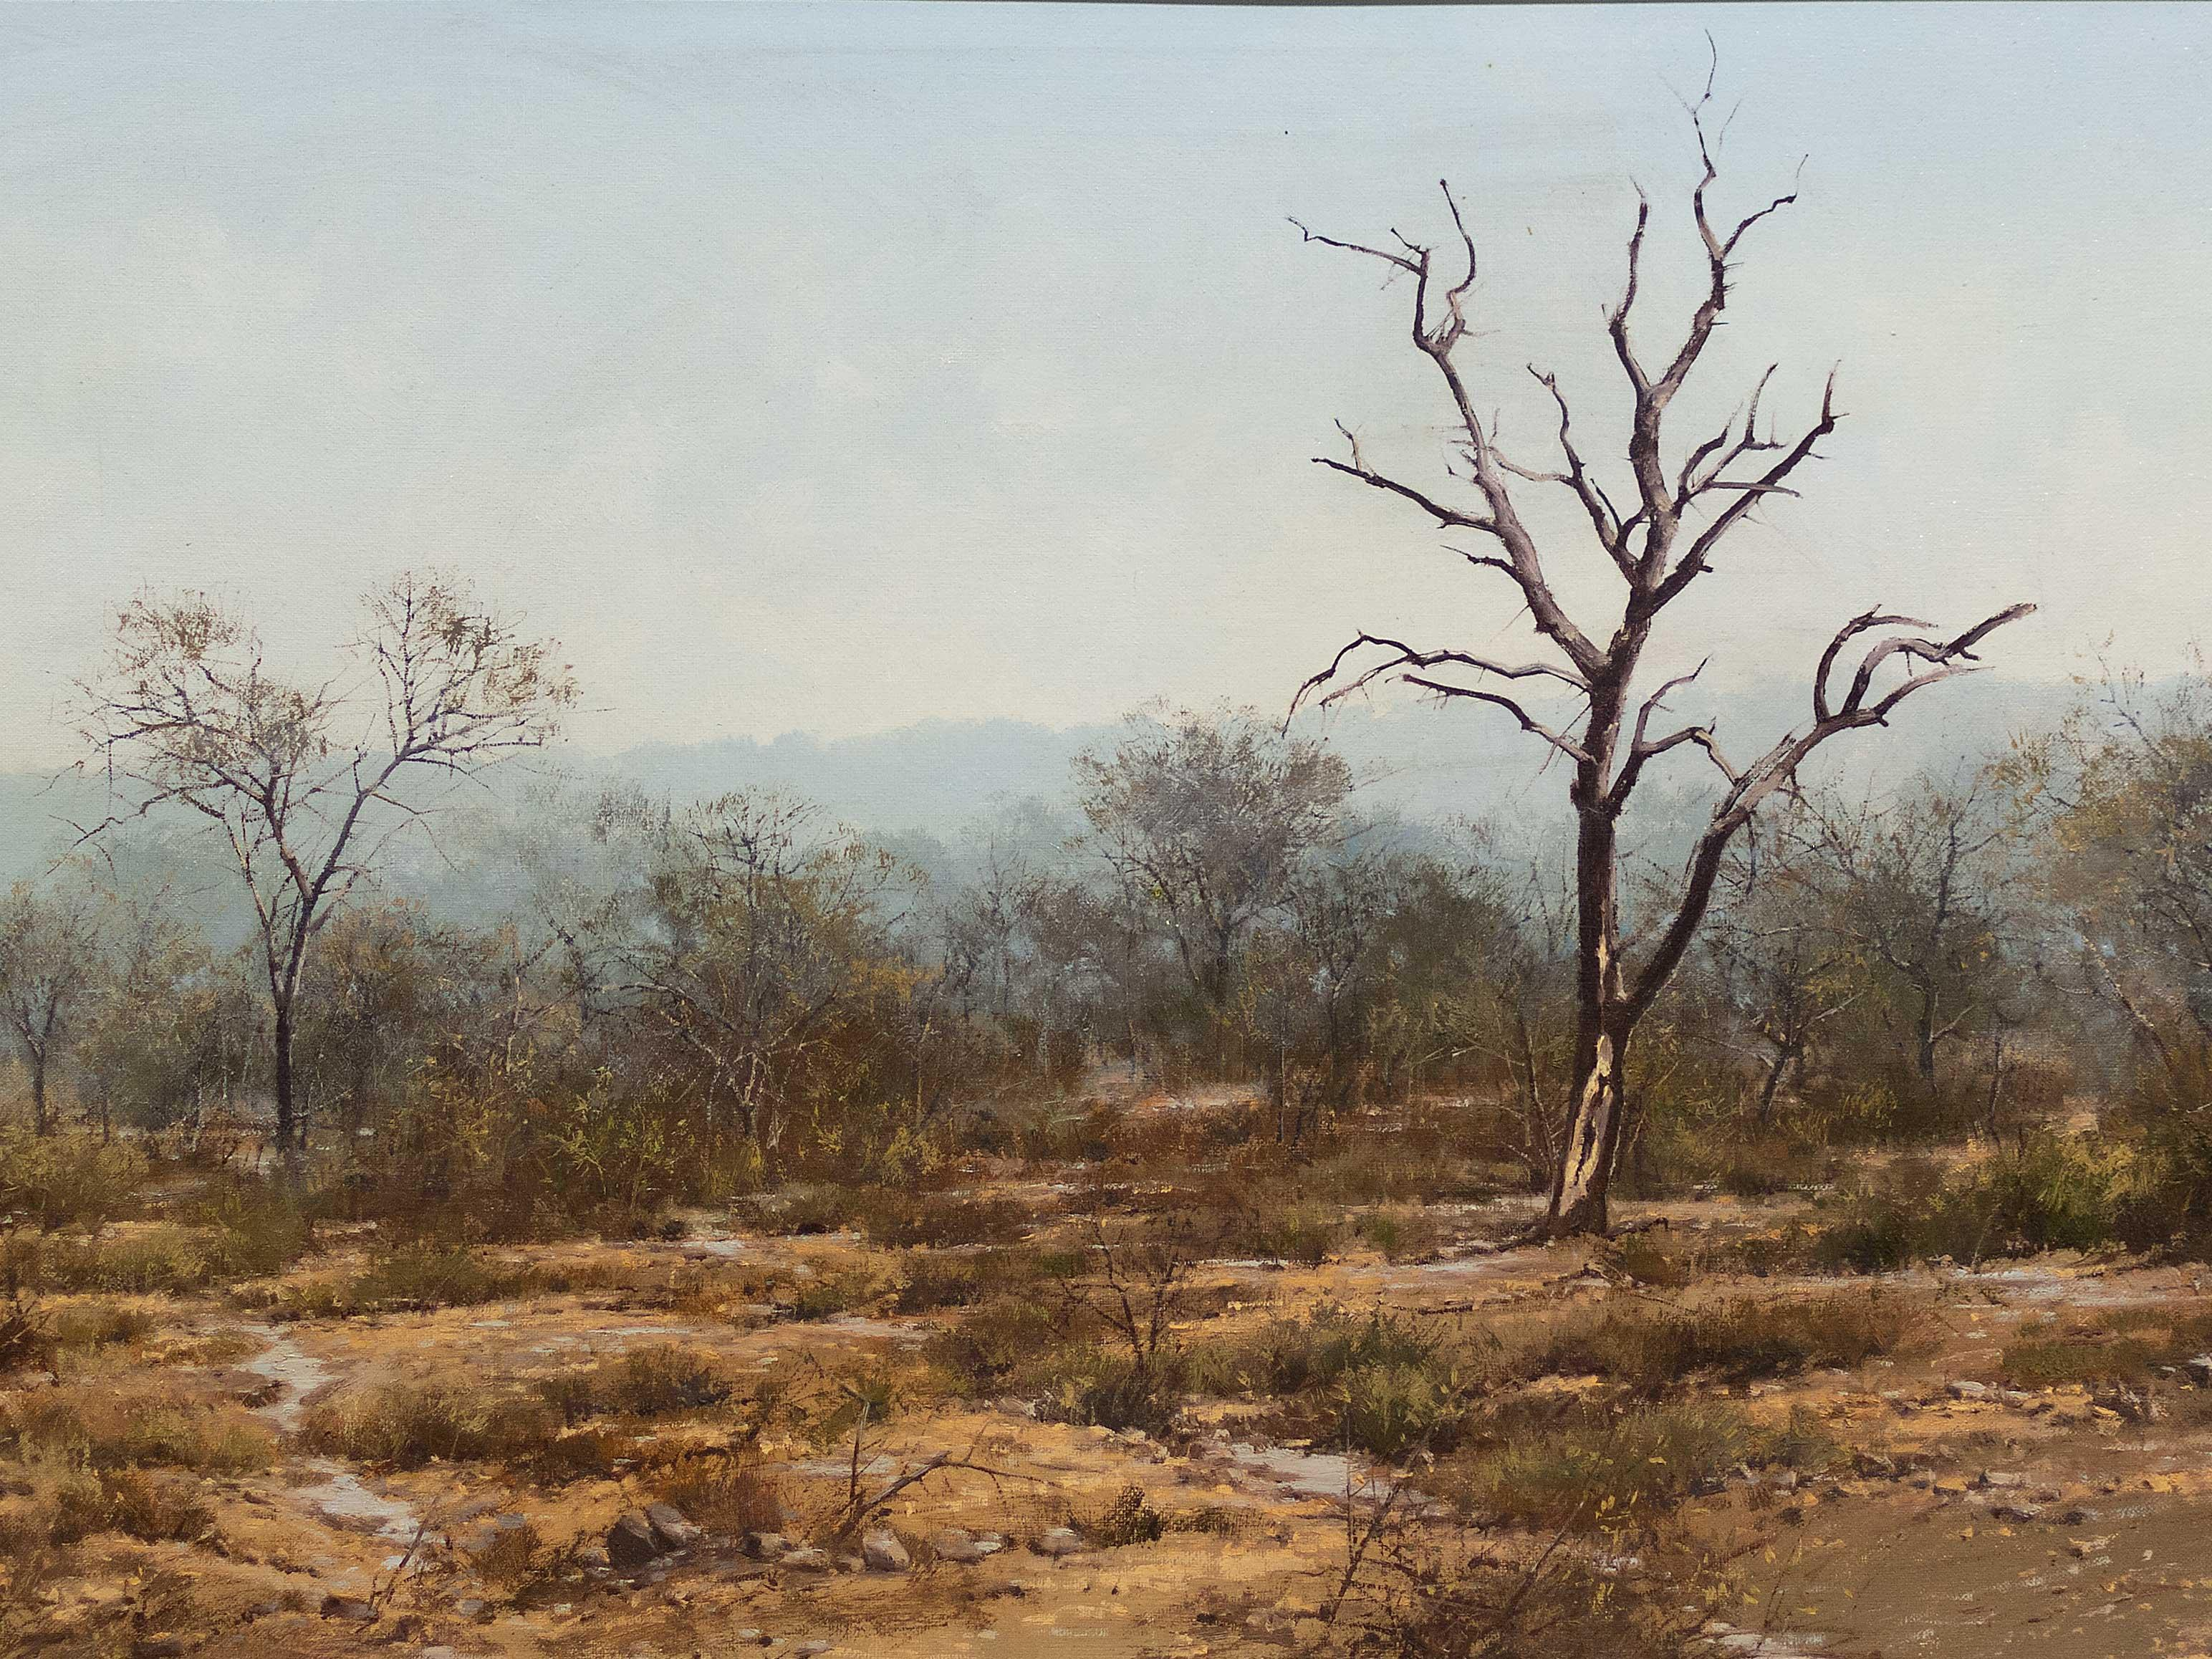 Francois Koch (SA, Born 1944) Oil, Bushveld Landscape, Signed & Dated '78, 50 x 100